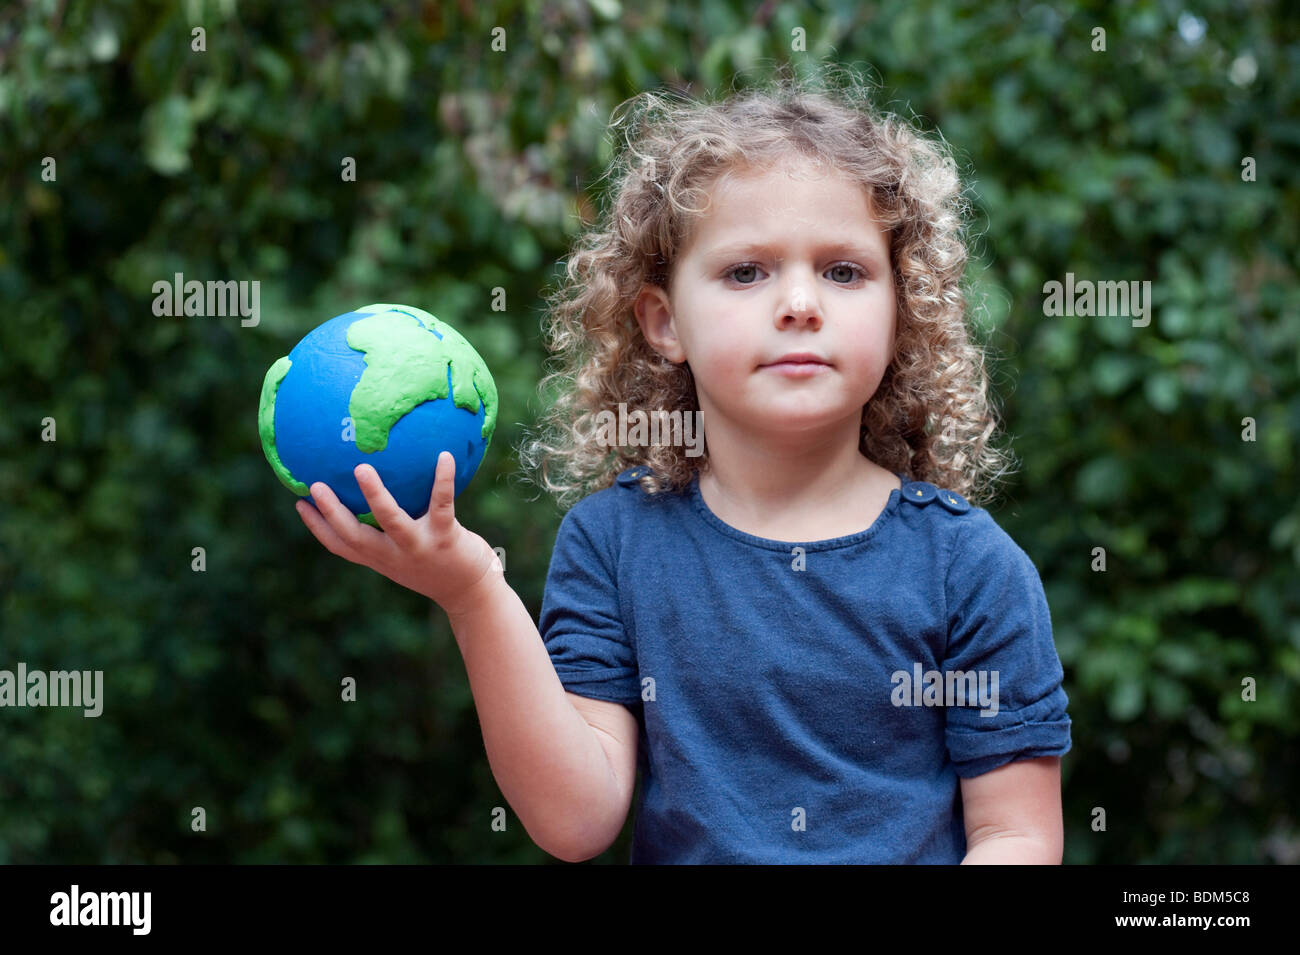 Young girl holding a model of The Earth - Stock Image